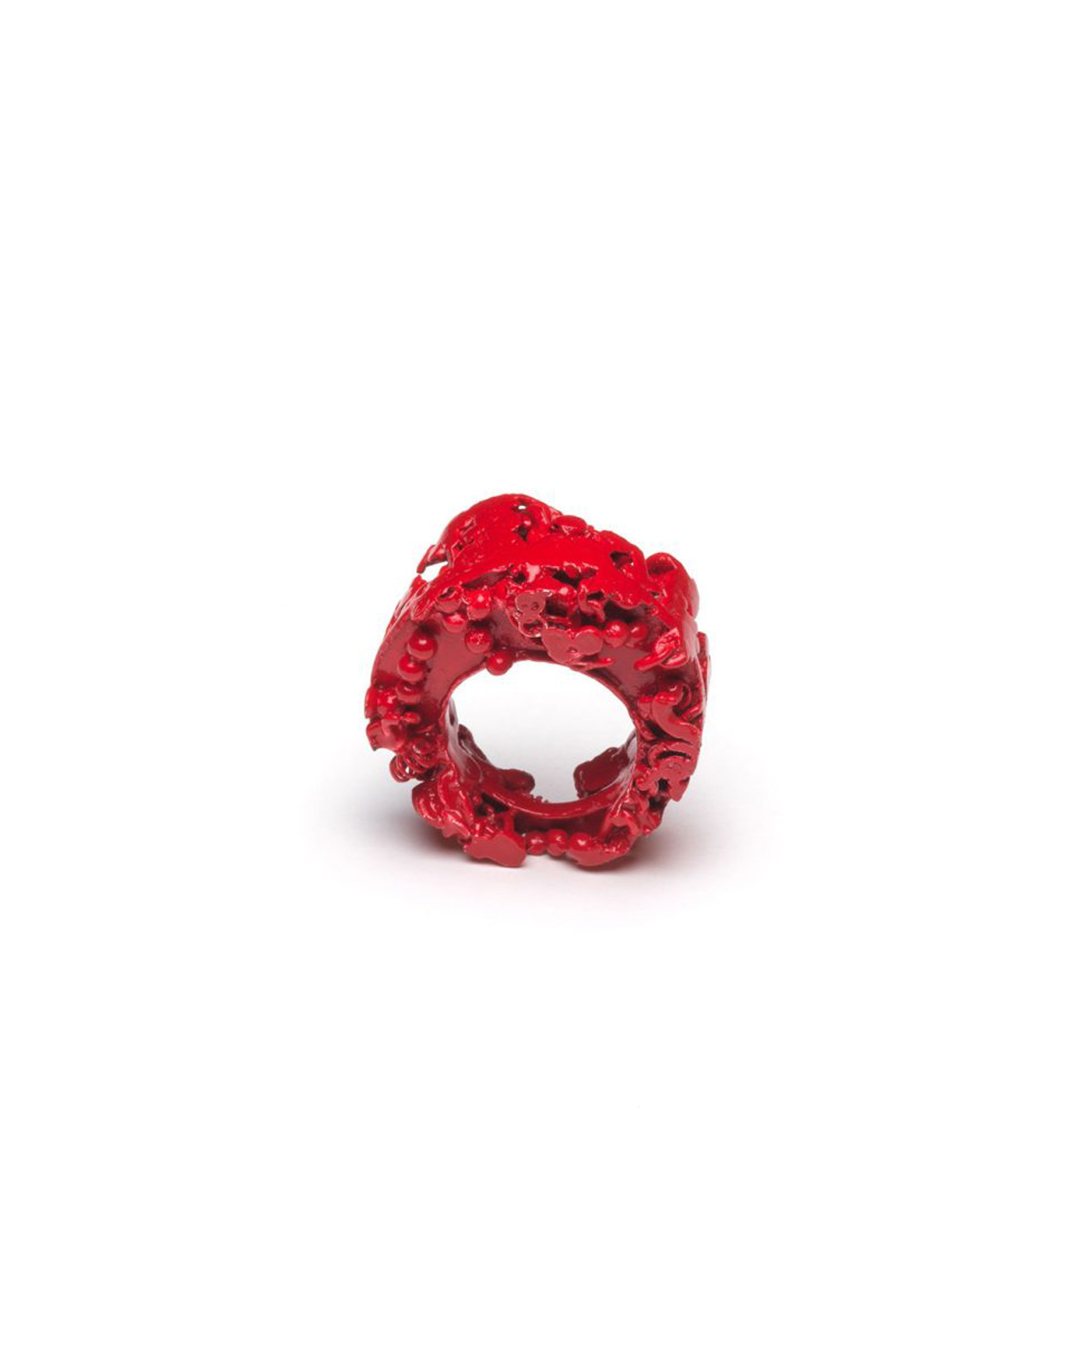 Doron Taubenfeld, untitled, 2009, ring; metal, paint, 33 x 30 x 17 mm, €350